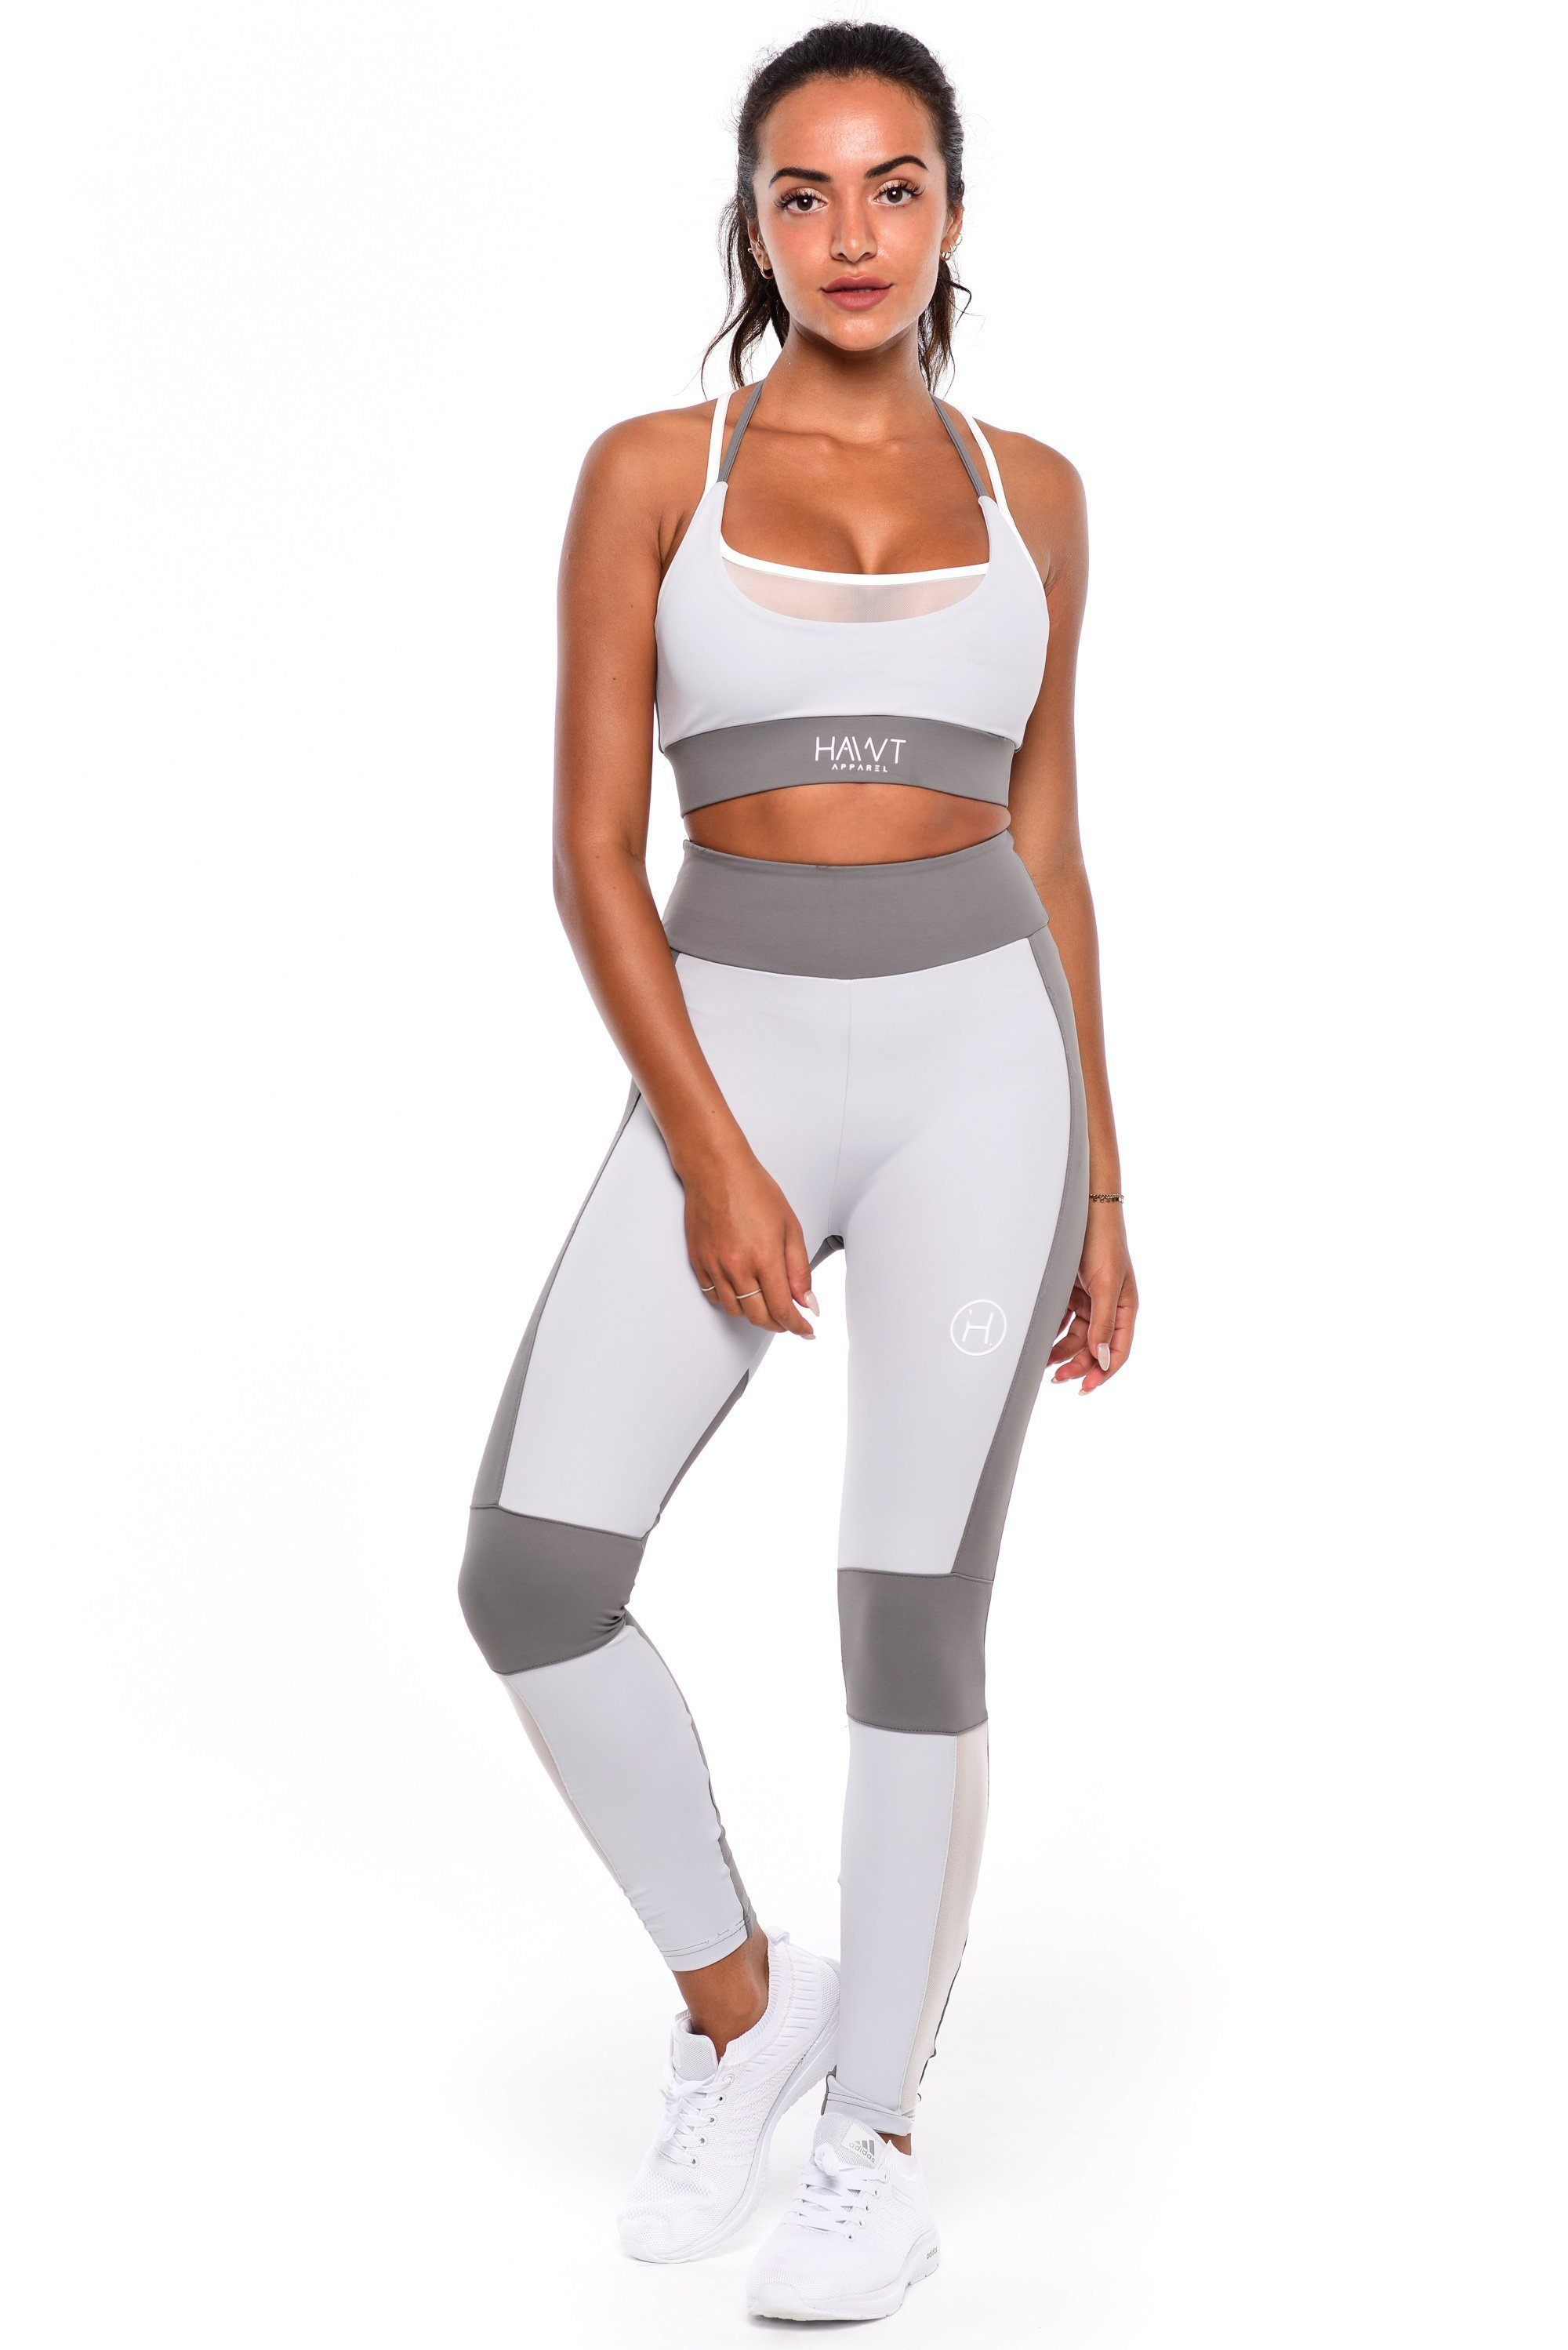 HAWT Aurora Sports Bra - Grey